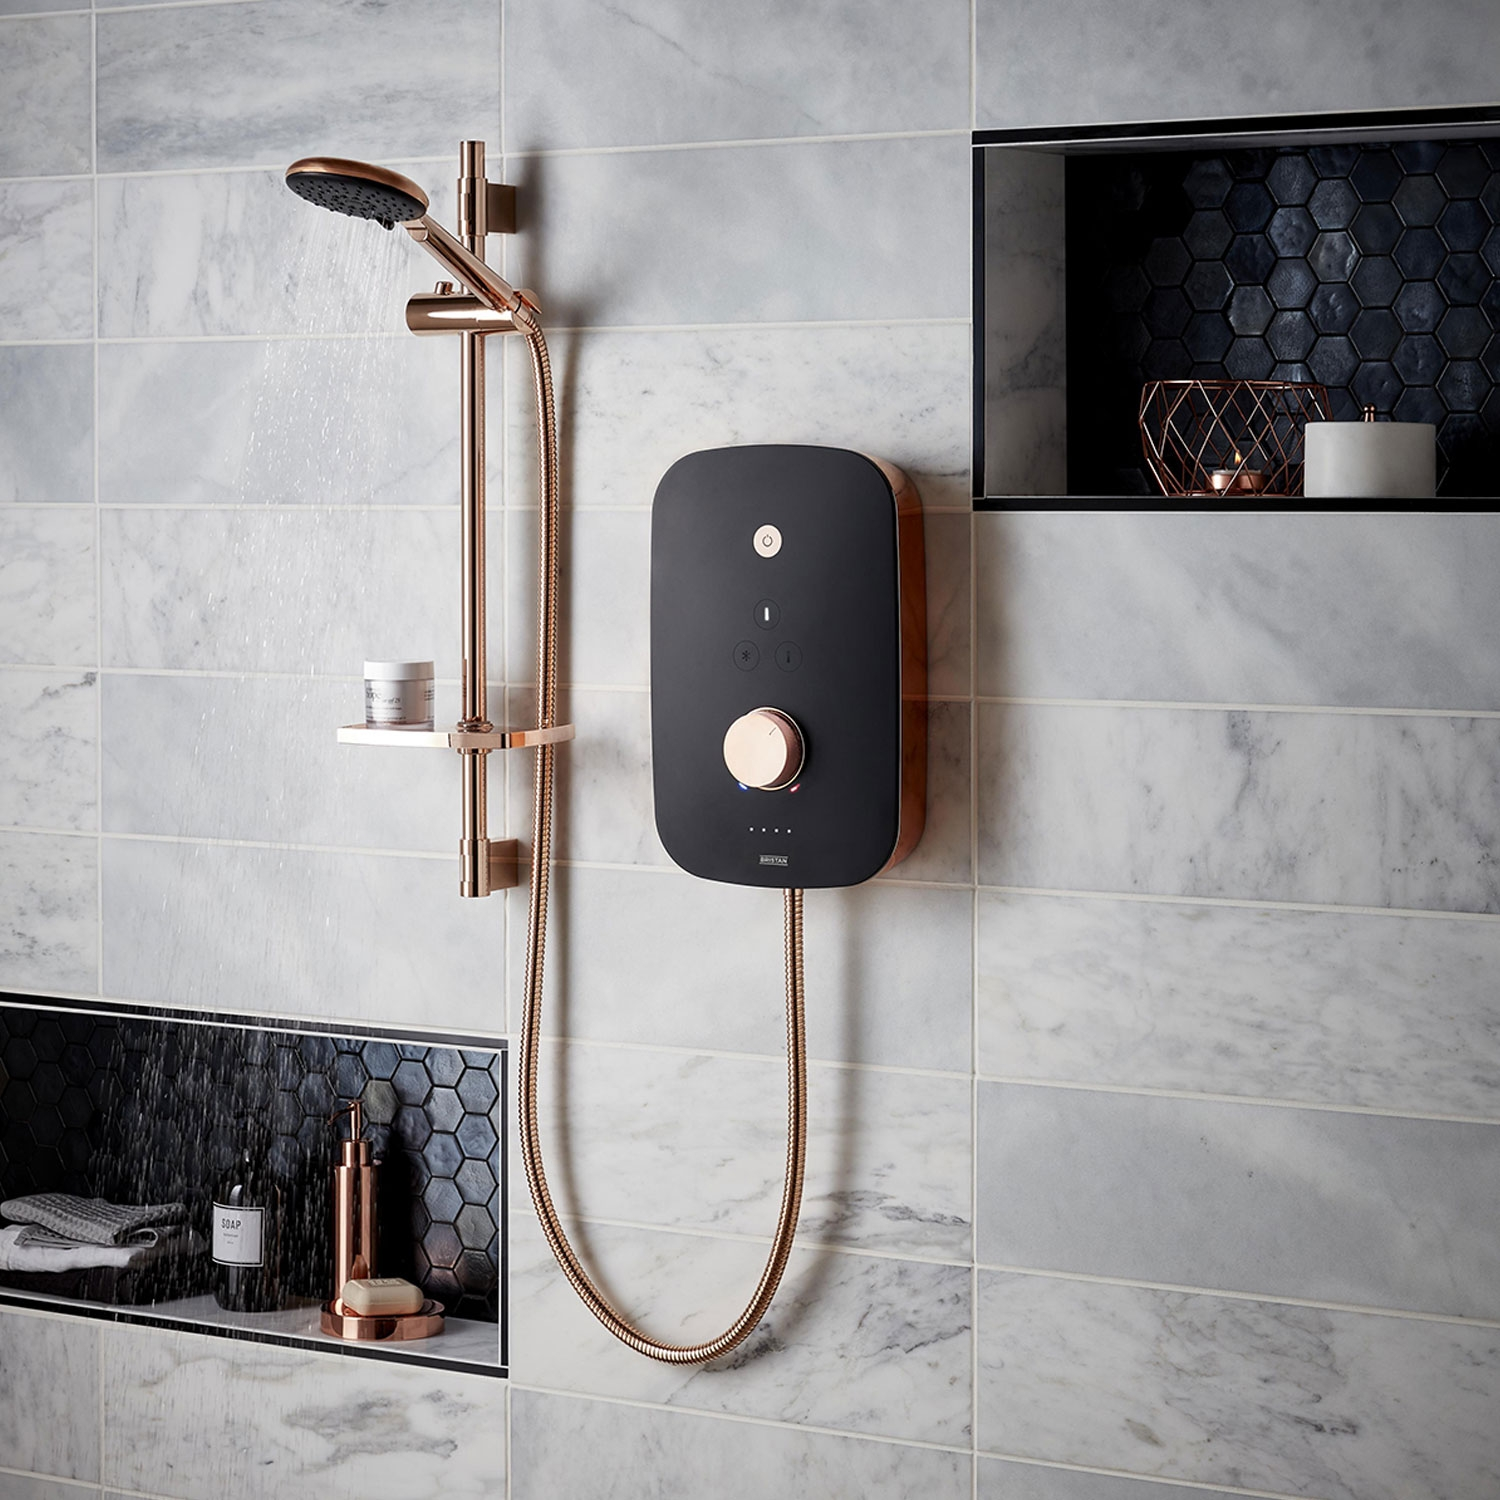 Bristan Noctis 10.5kw Electric Shower - Black and Rose Gold